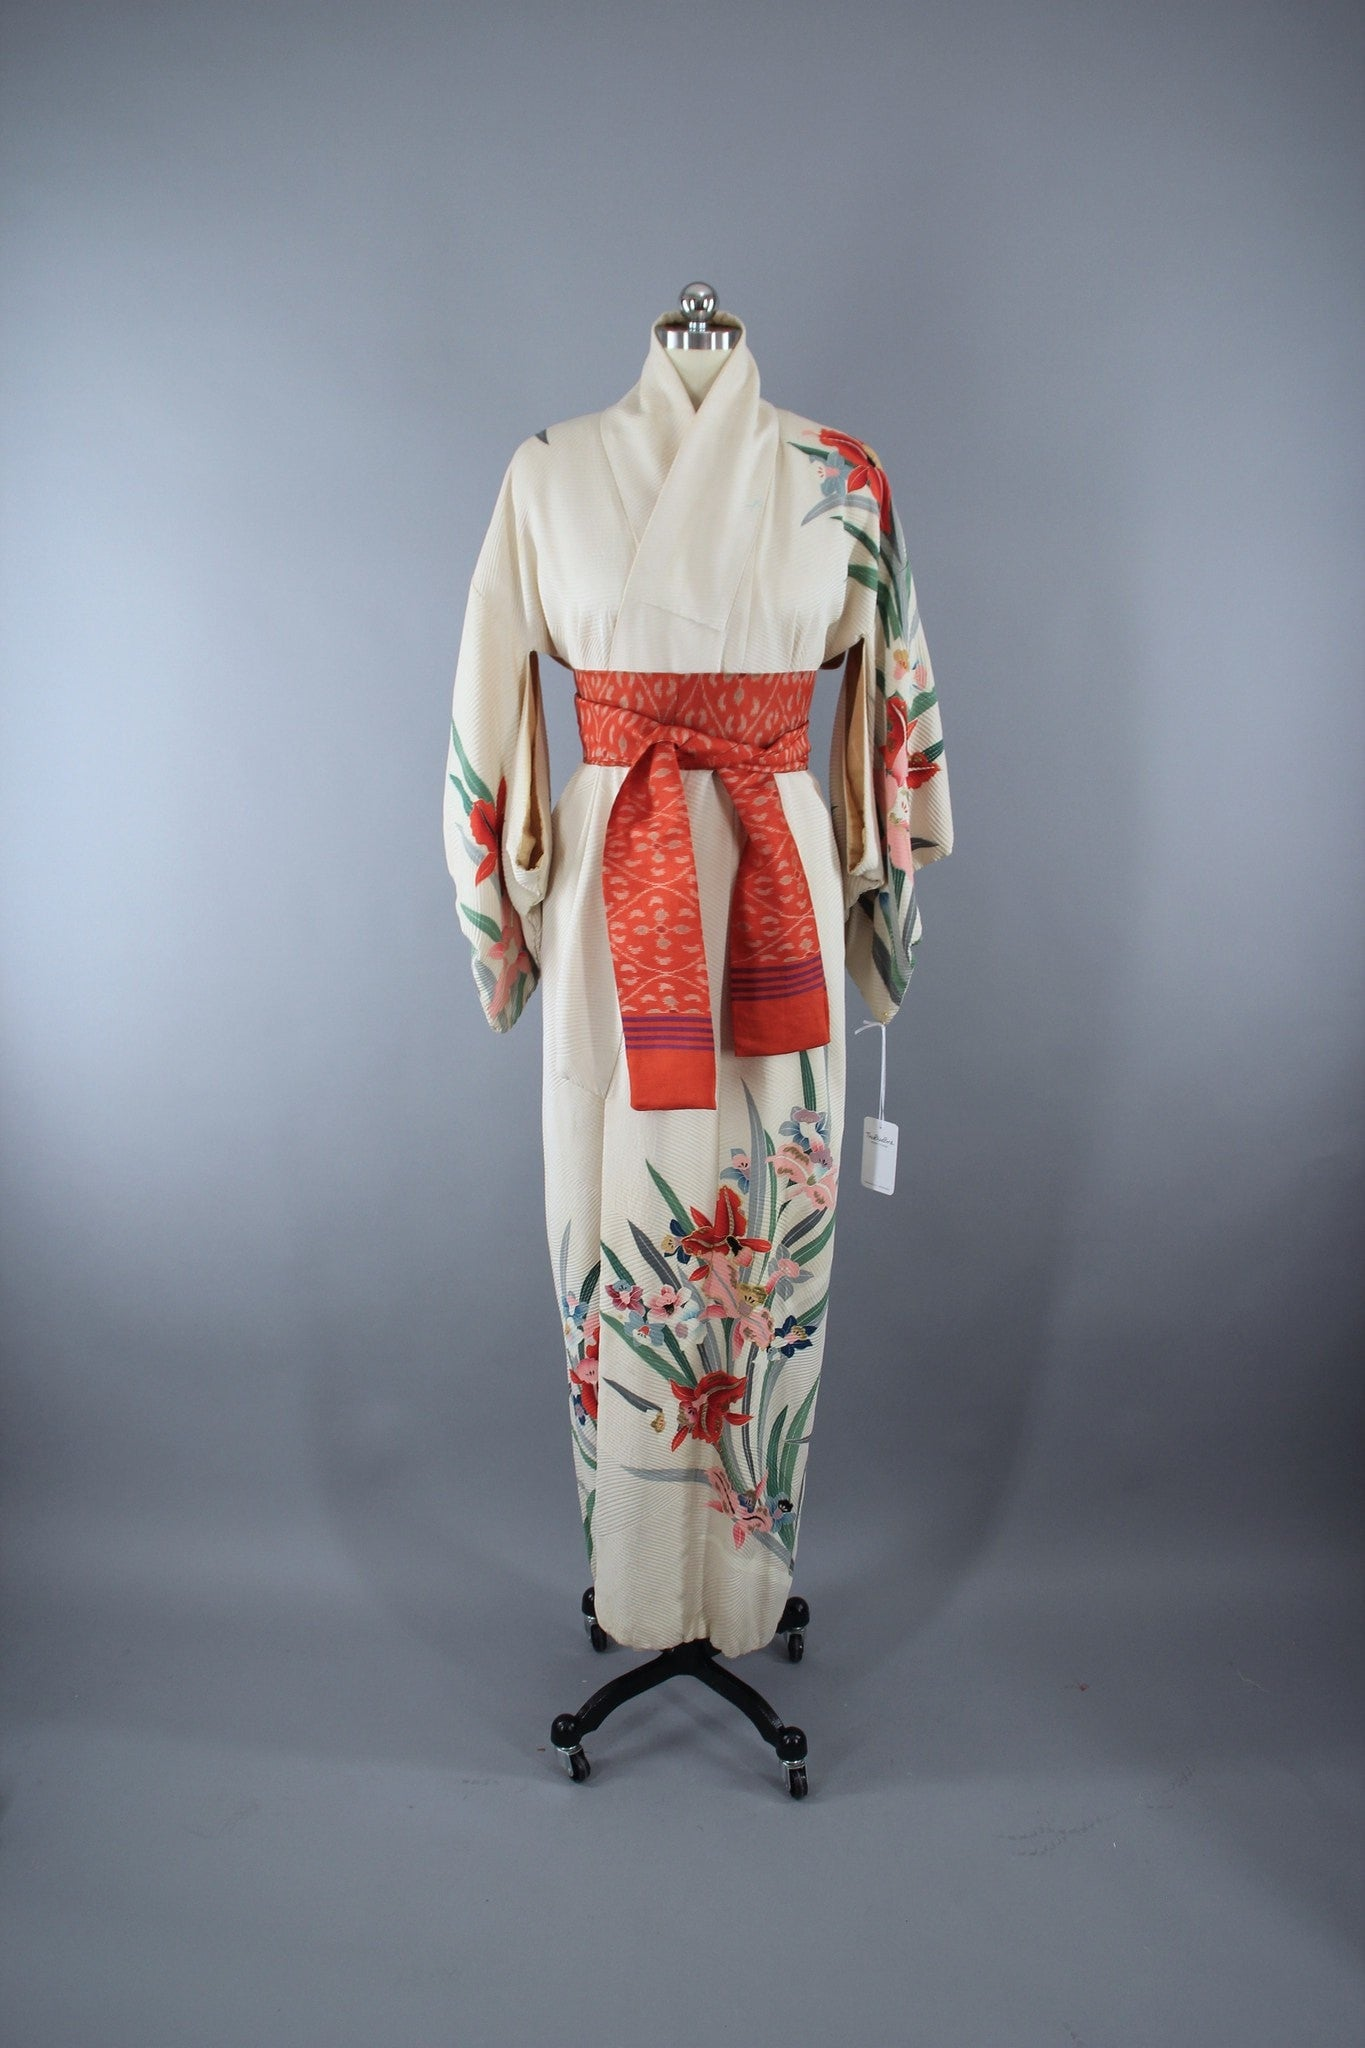 1940s Vintage Silk Kimono Robe in Ivory with Pink Catalaya Orchids Floral Print Kimono ThisBlueBird